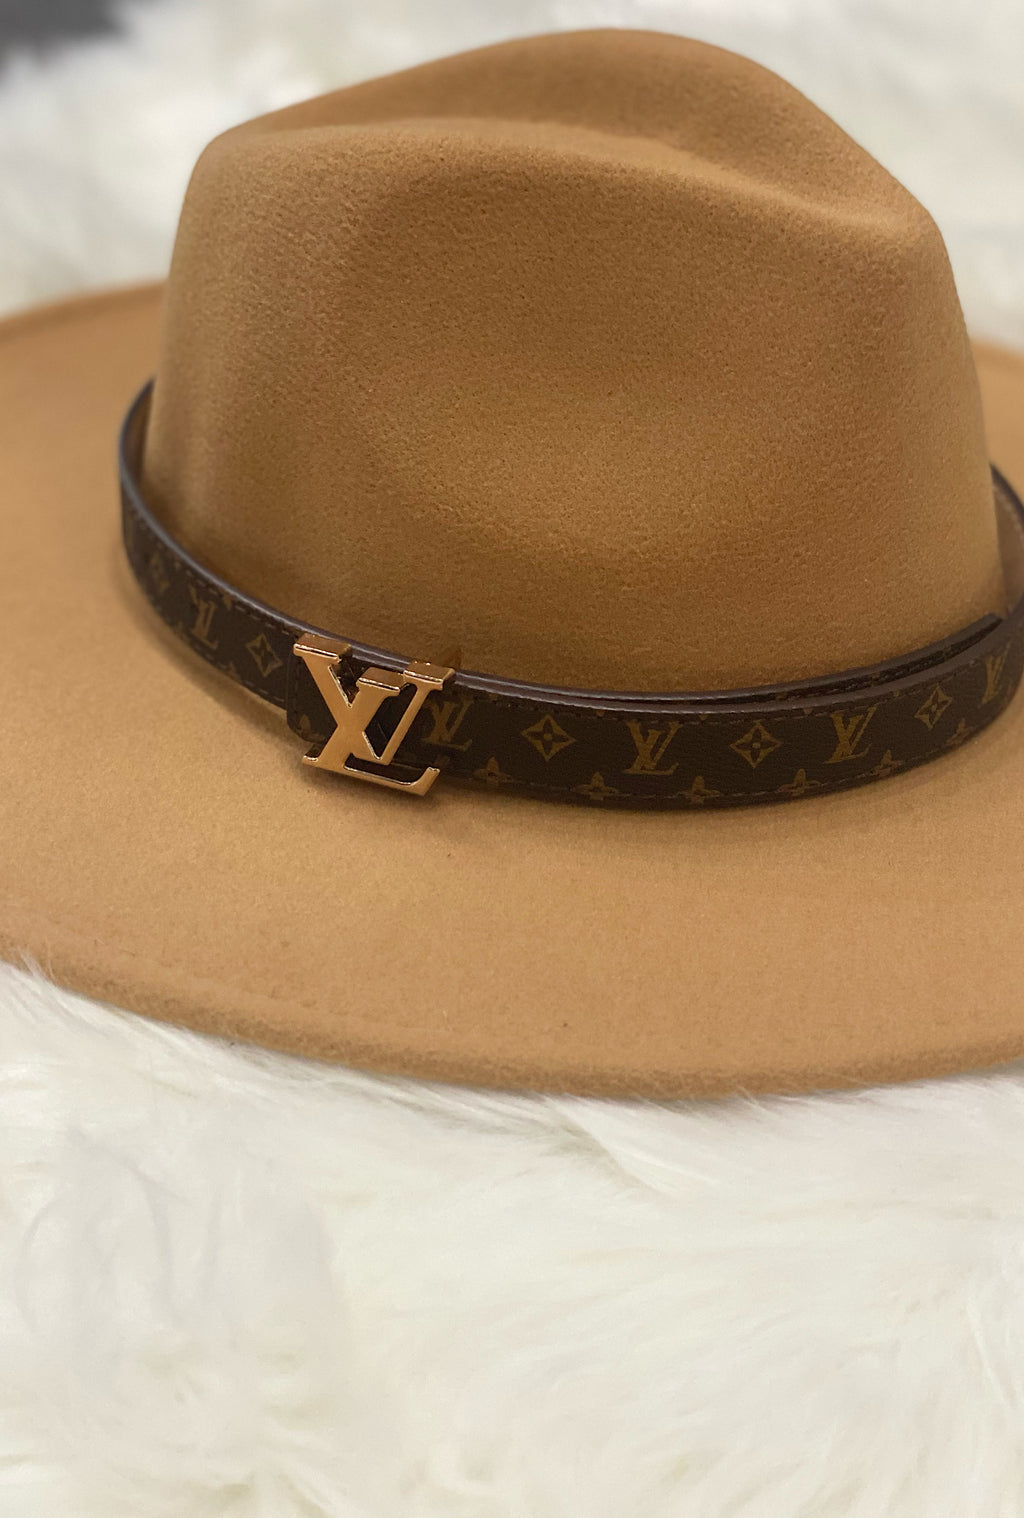 LV Hat Band-2 Colors - Bellamie Boutique